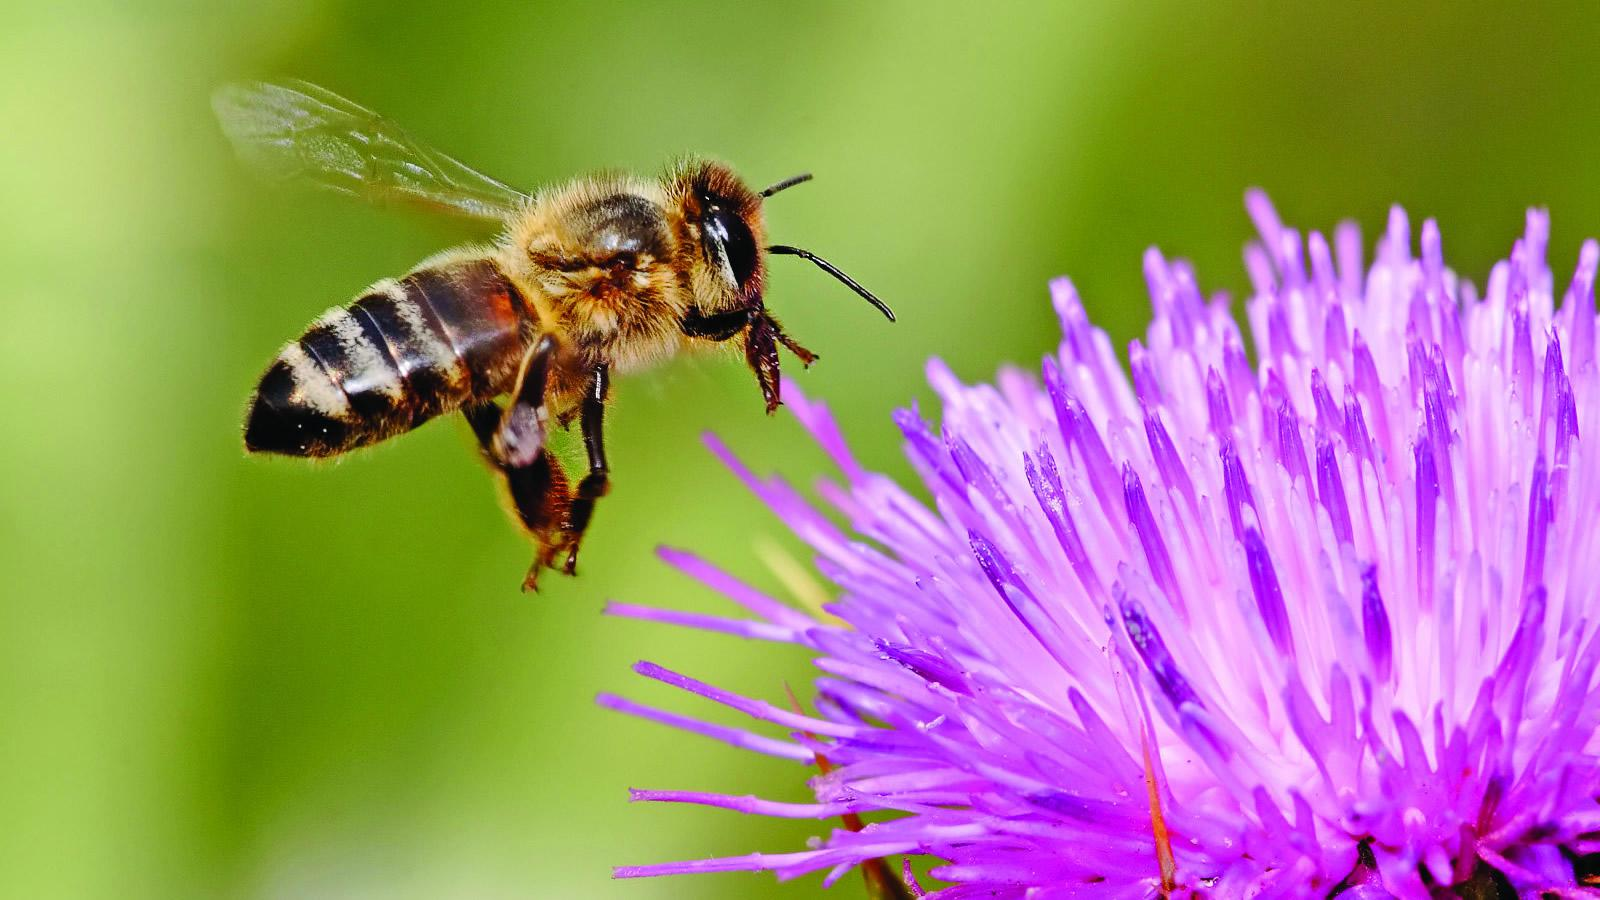 <h4>SAVE THE BEES</h4><h5>Goal: To stem the alarming decline in bees and other pollinator species, 让我们停止使用新烟碱类杀虫剂来杀死蜜蜂.</h5><em>sheliapic76 via Flickr</em>